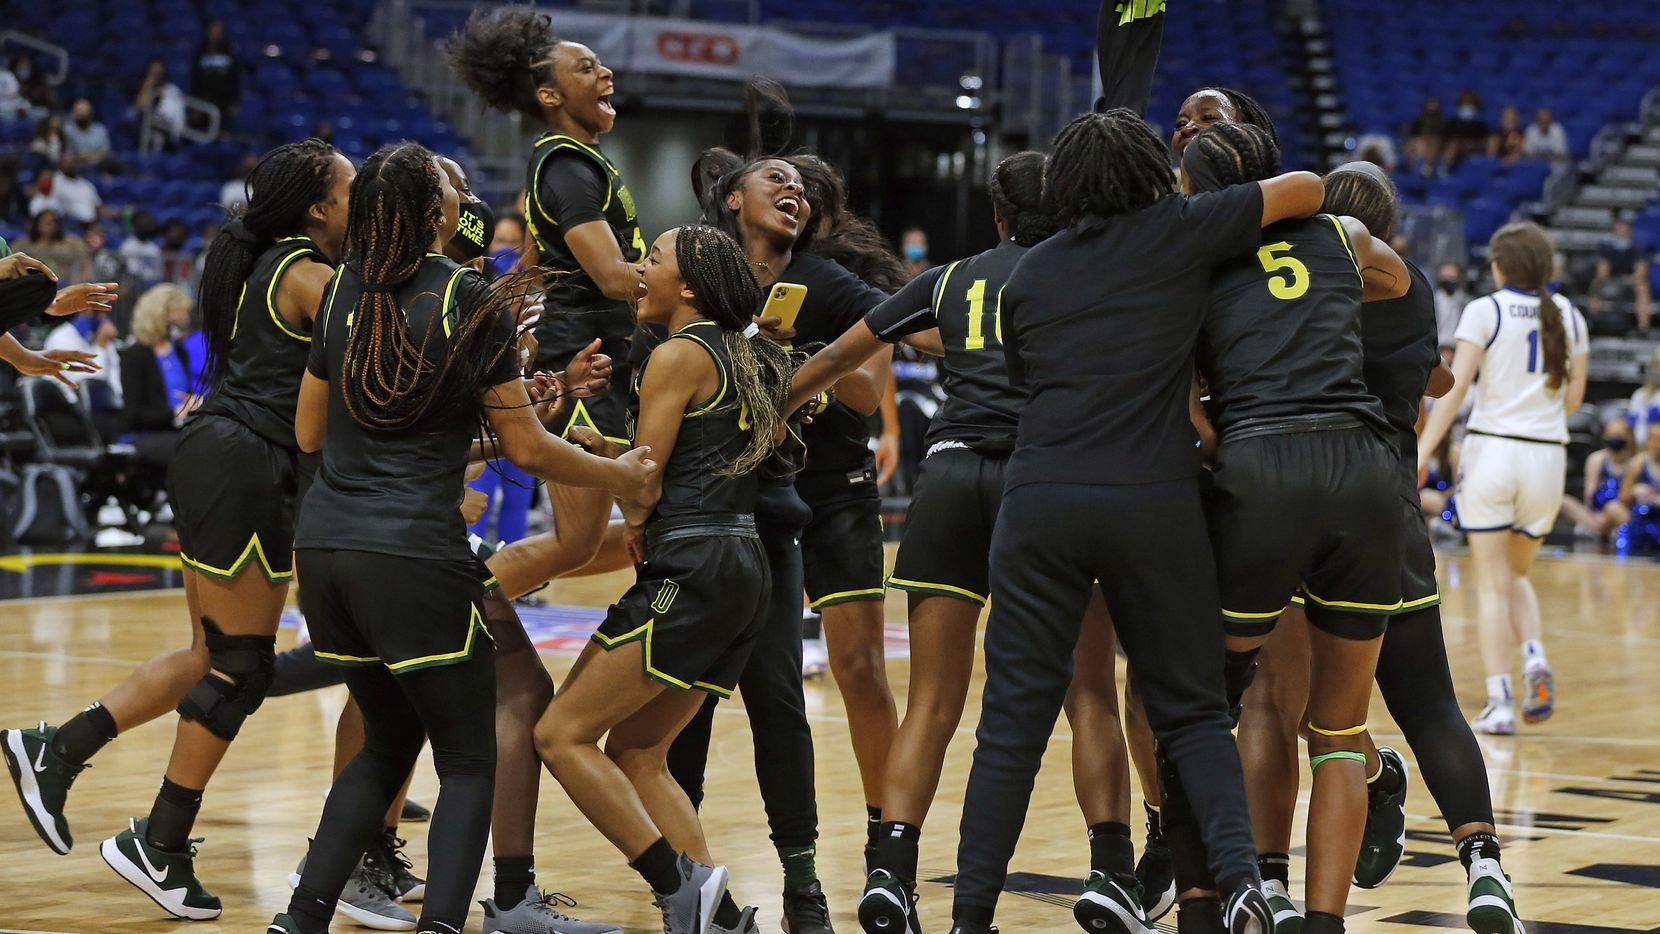 Desoto girls celebrate.DeSoto vs. Cypress Creek girls basketball Class 6A state championship game on Thursday, March 12, 2021 at the Alamodome.